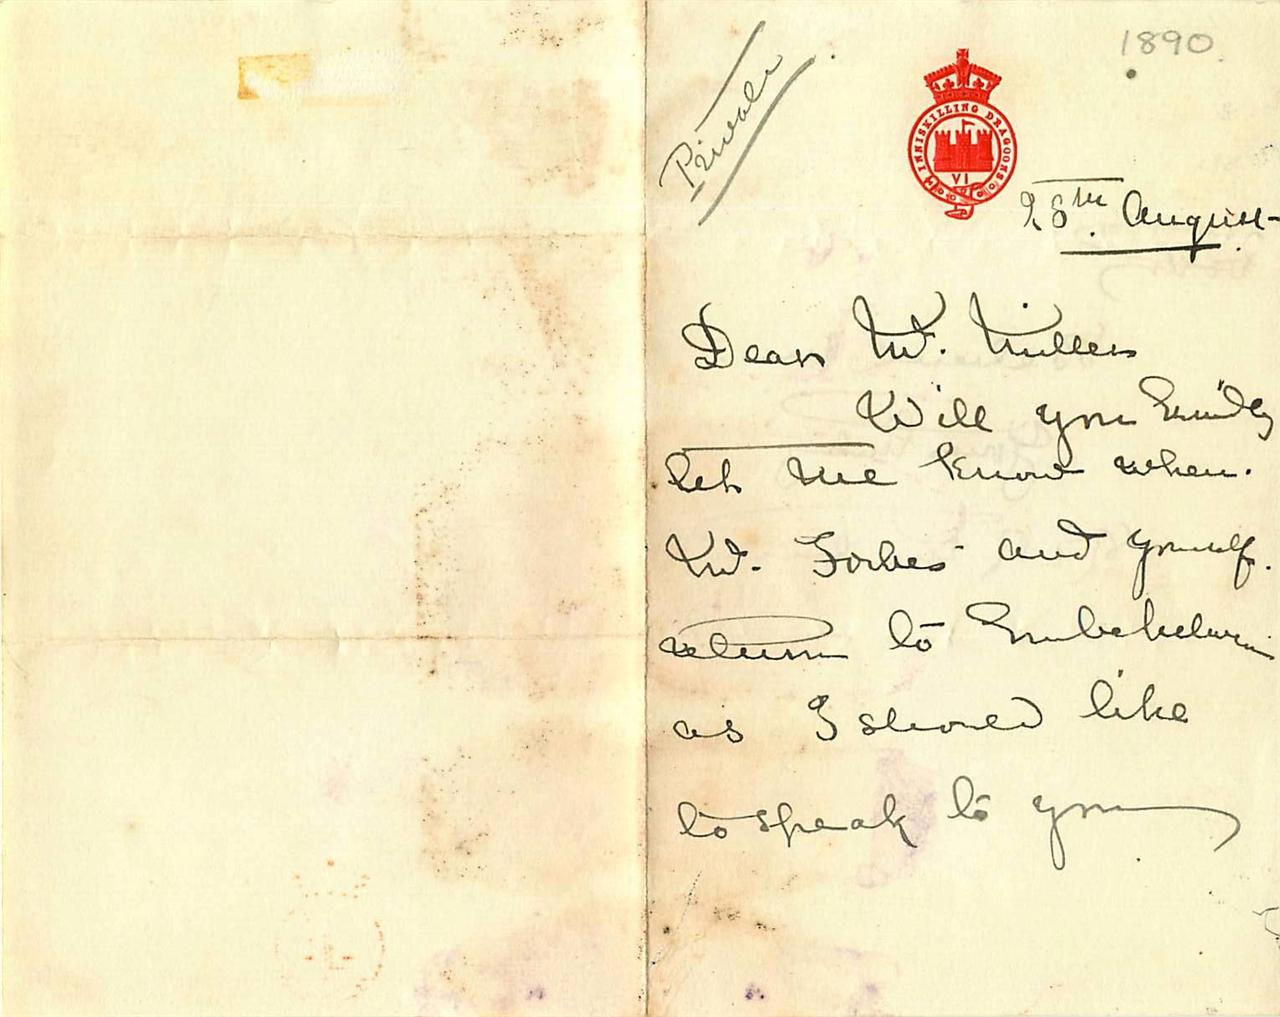 Vintage-Autograph-Letter-Colonel-Sir-R-E-R-Martin-Inniskinng-Dragoons-1890